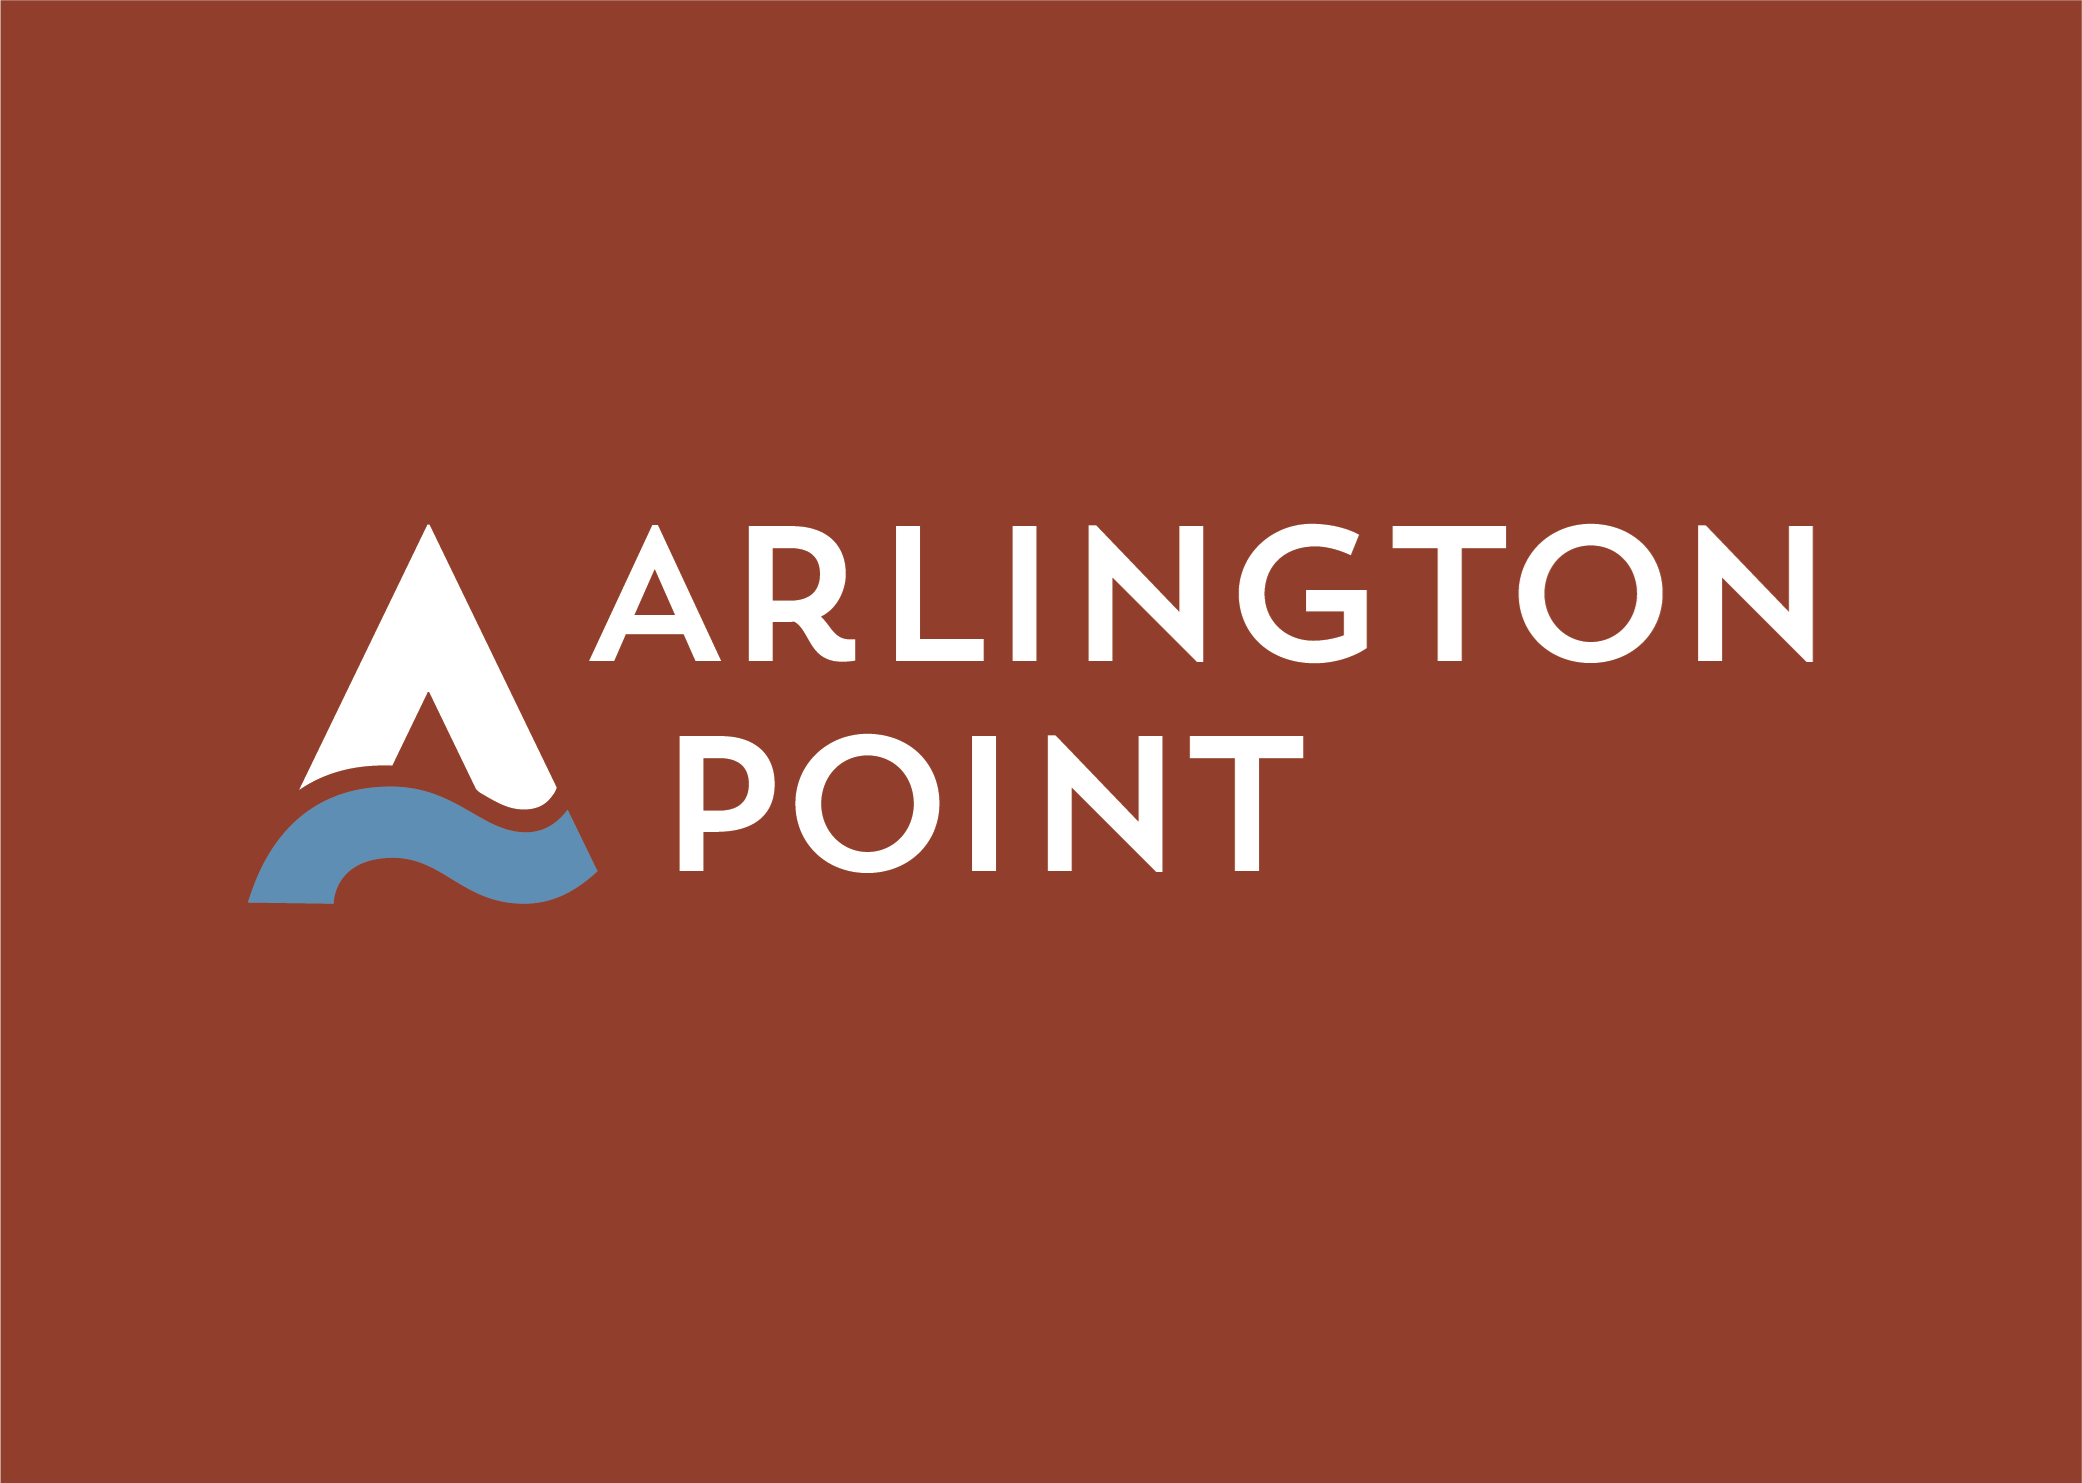 Contact Arlington Point to Schedule a Visit